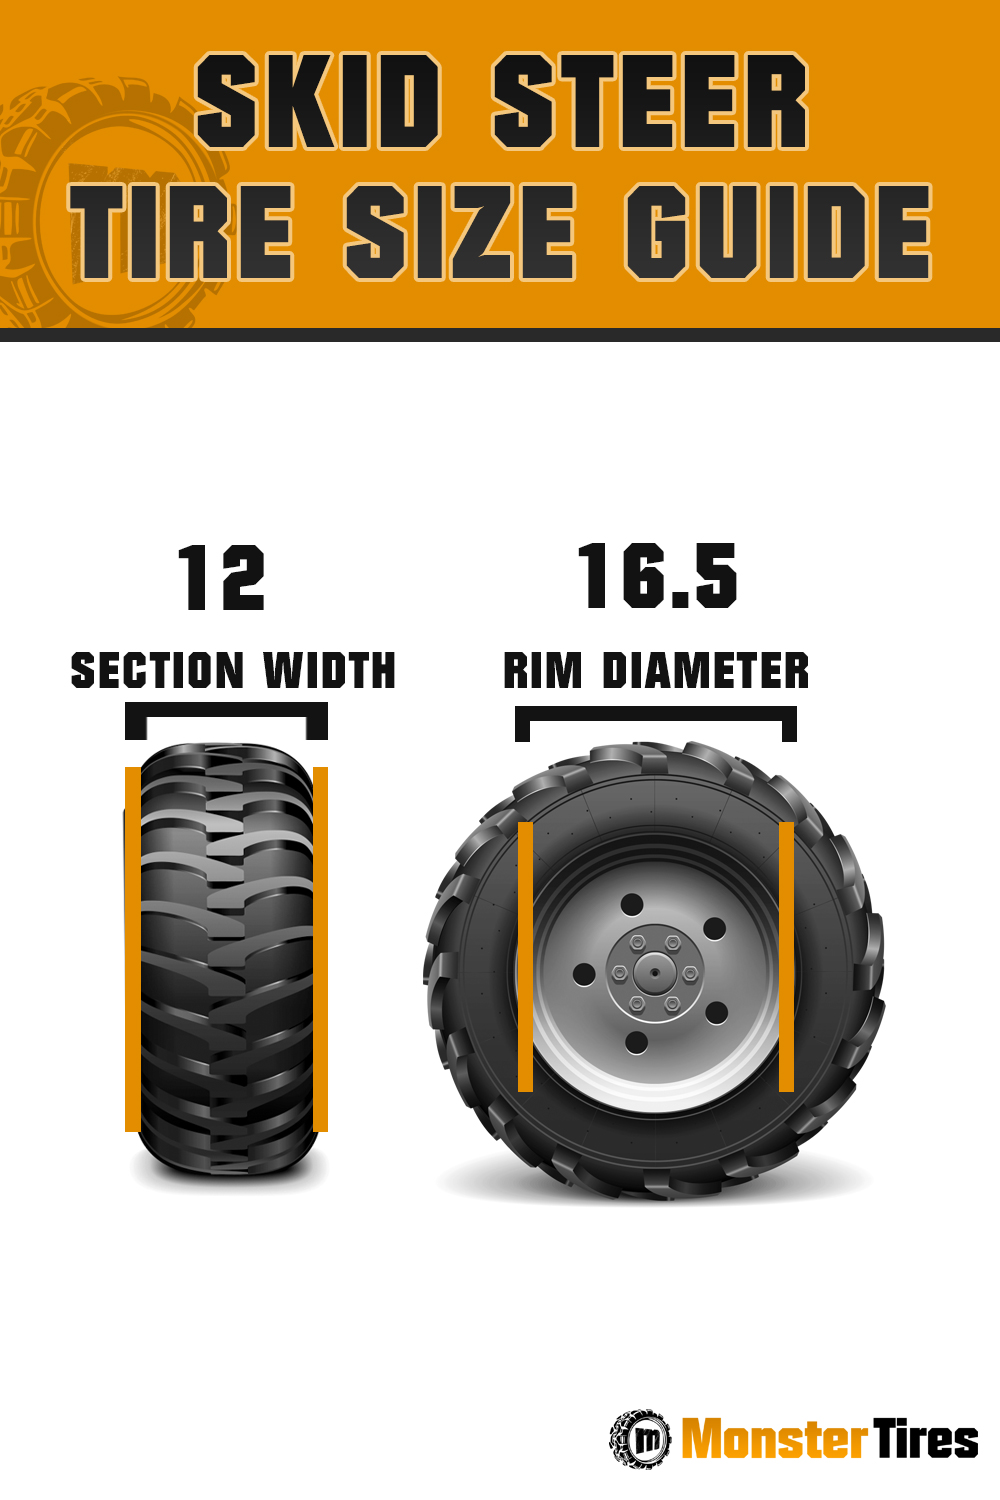 Skid Steer Tire Size Guide